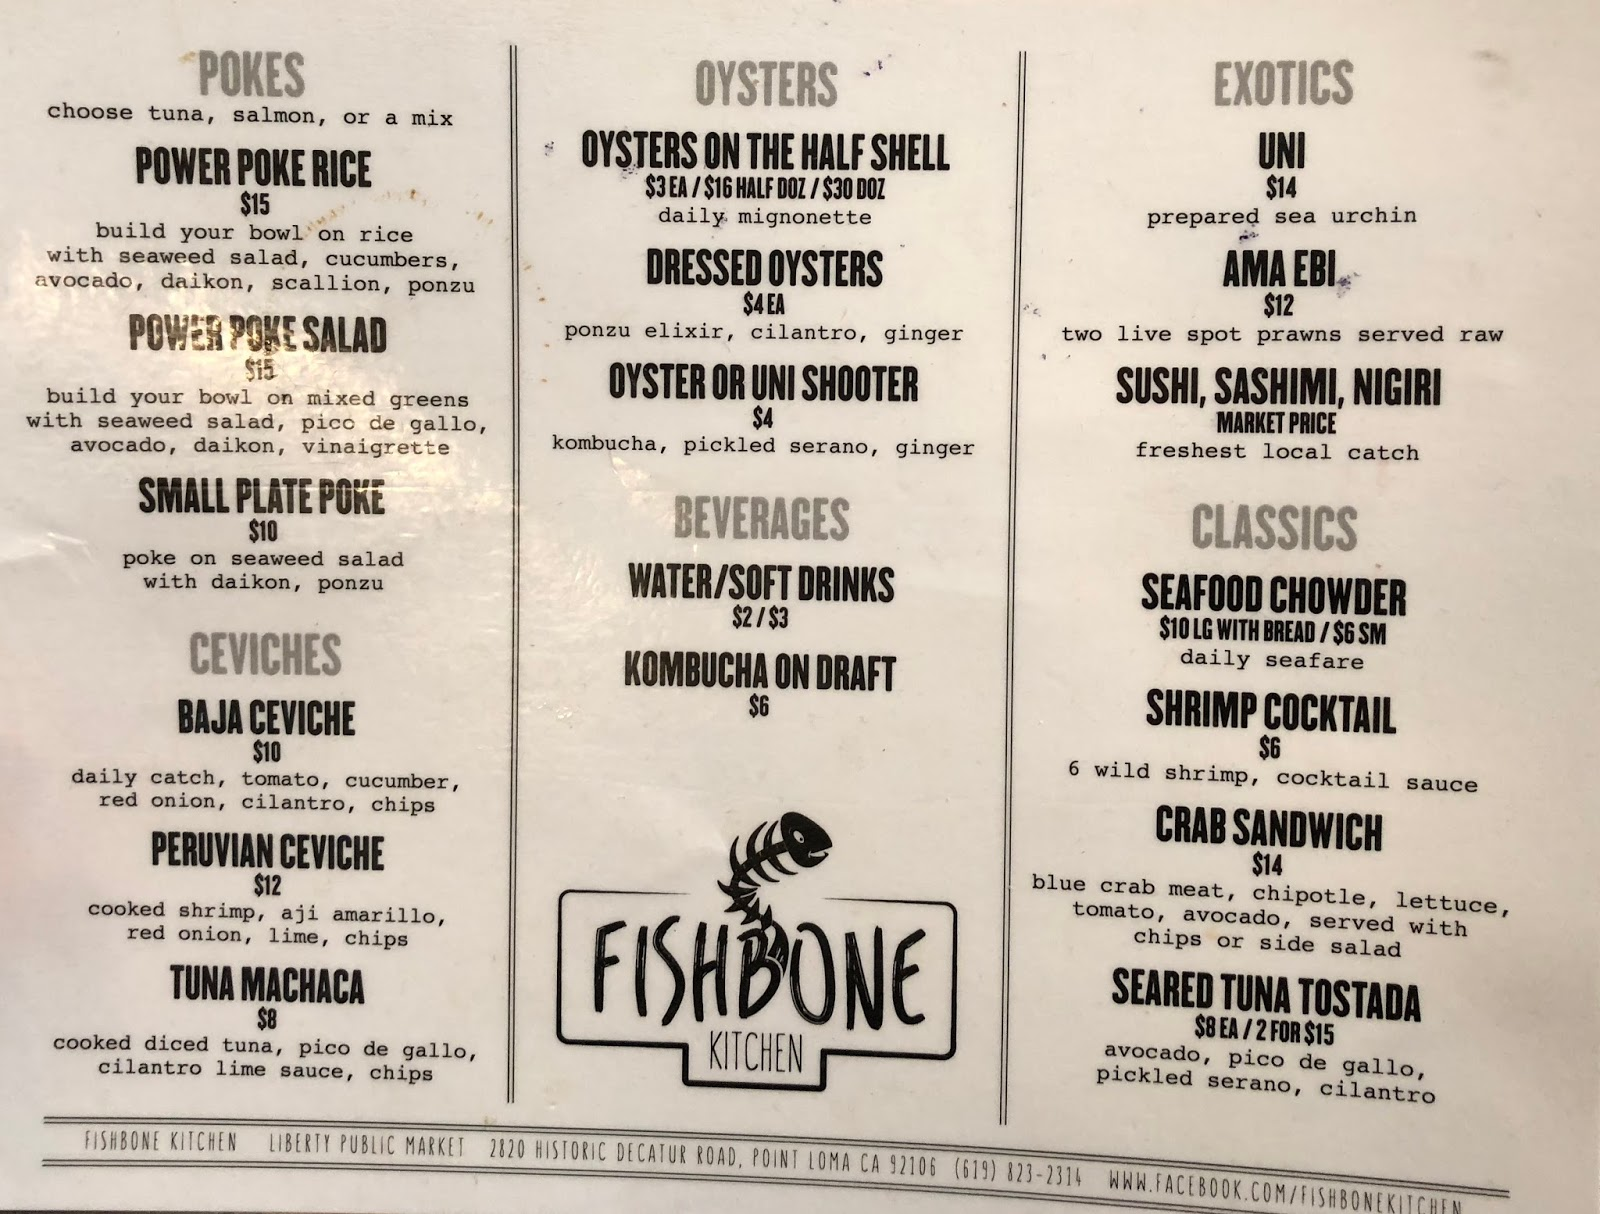 TASTE OF HAWAII: FISHBONE KITCHEN - SAN DIEGO, CA